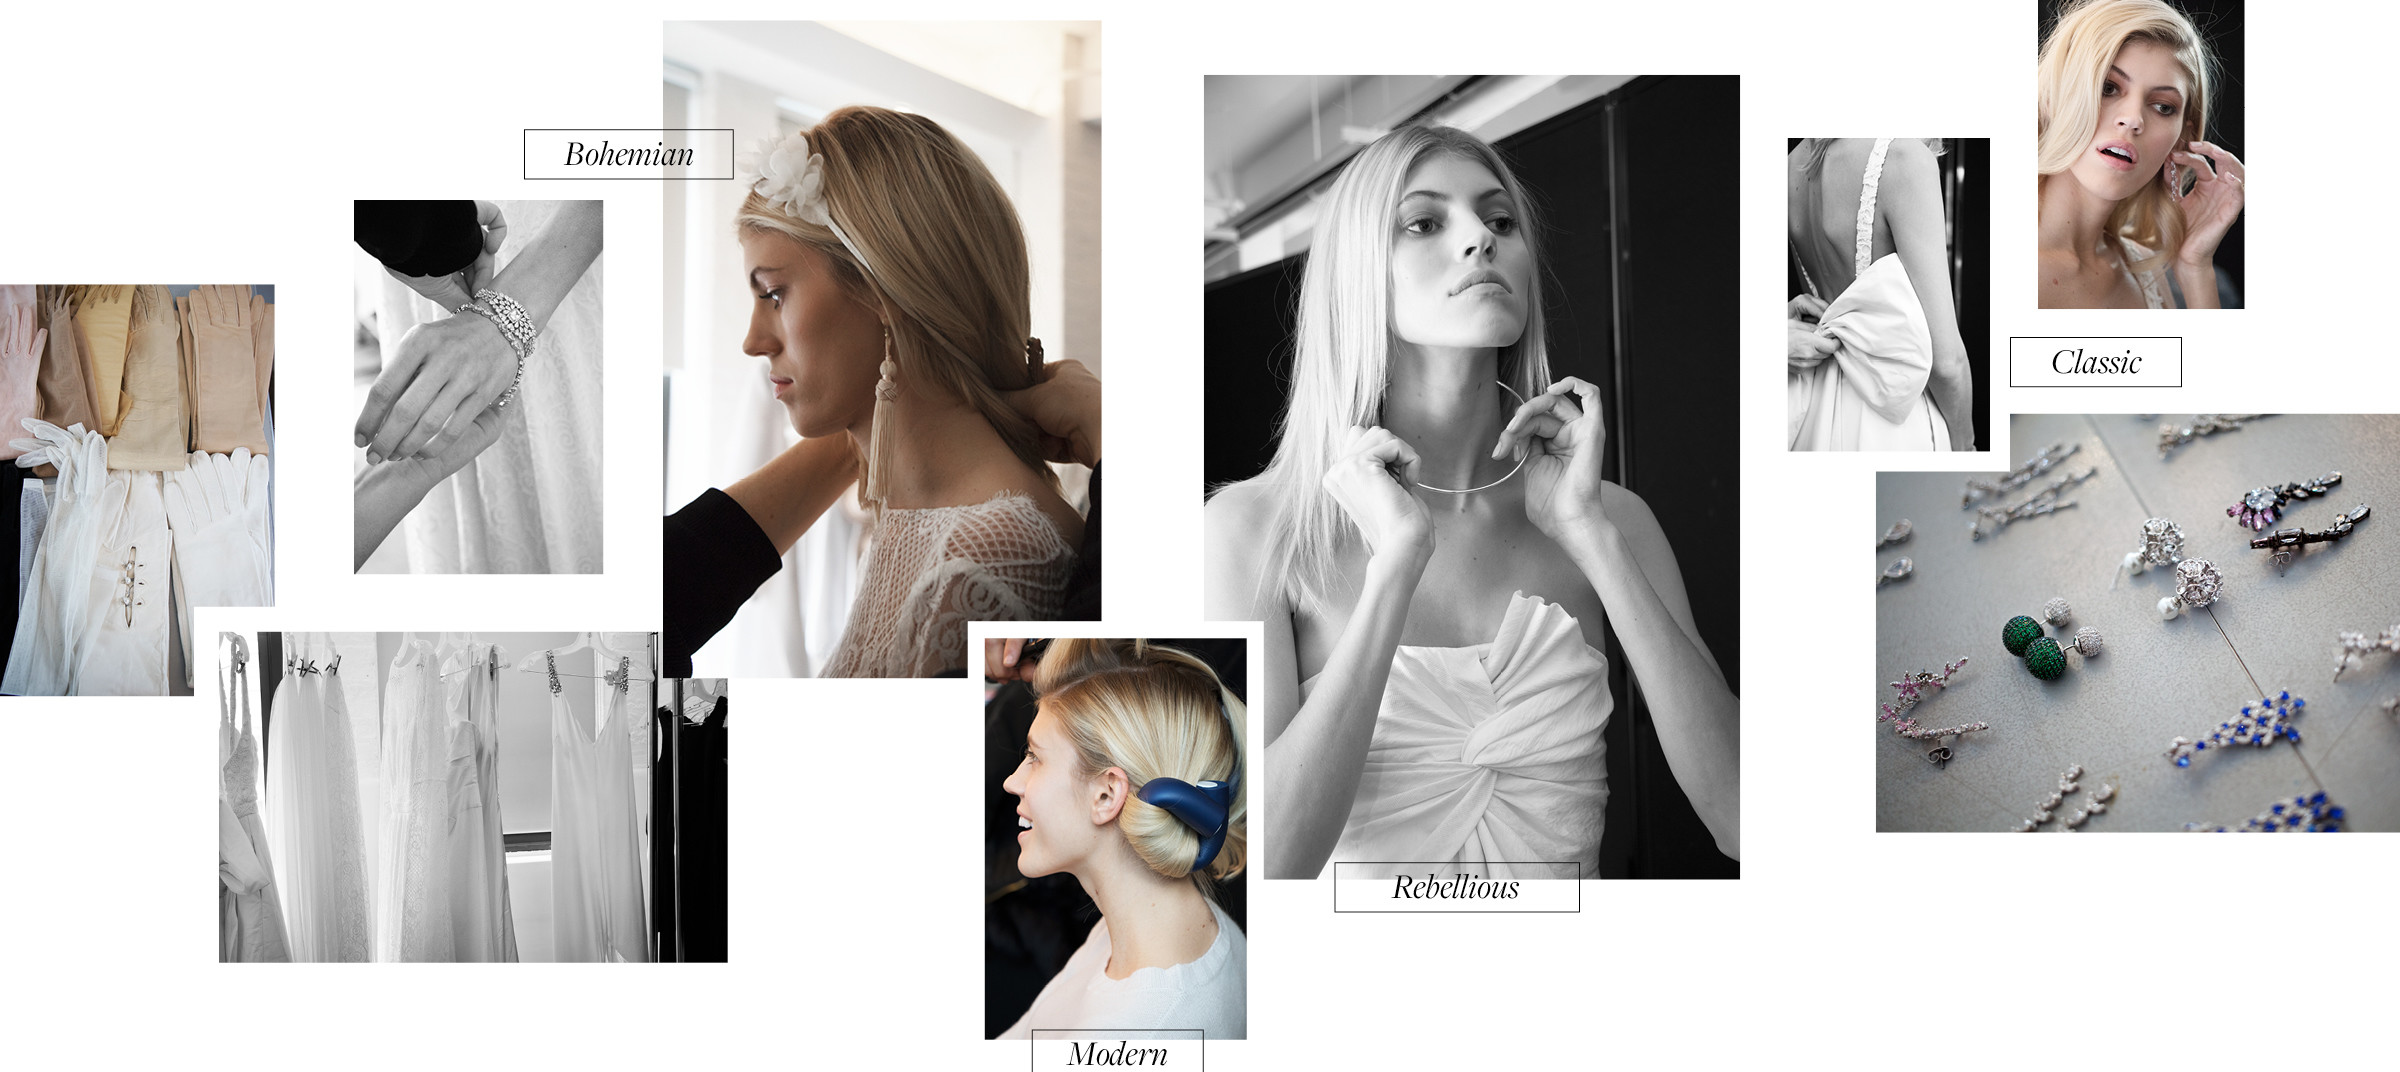 Behind the scenes image collage of photoshoot with creative direction by DTE studio